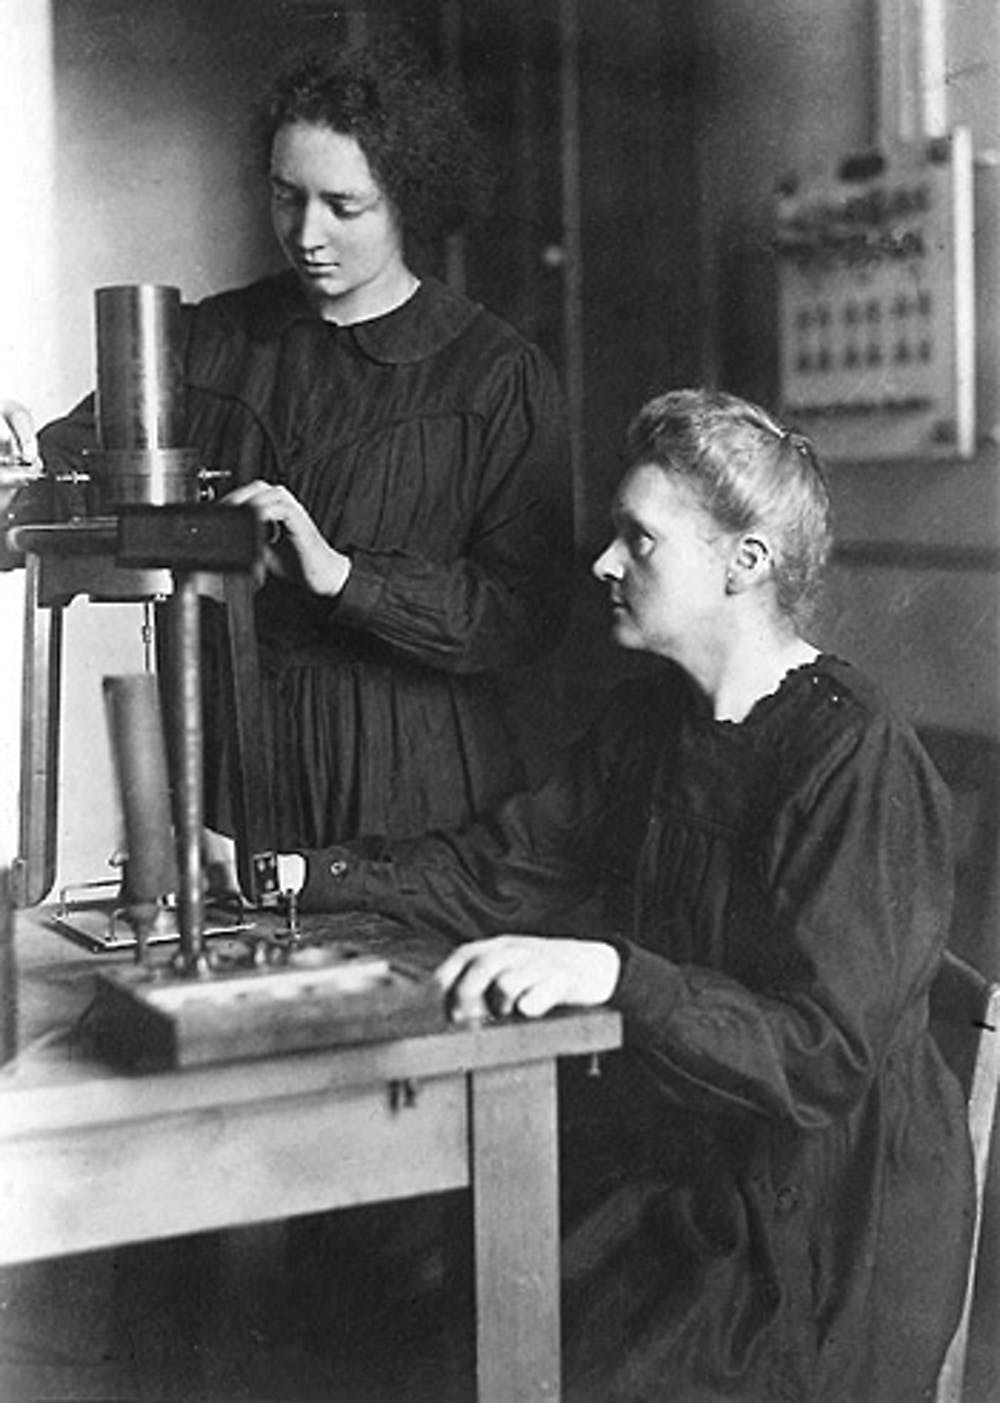 What contributions did marie curie make to medicine